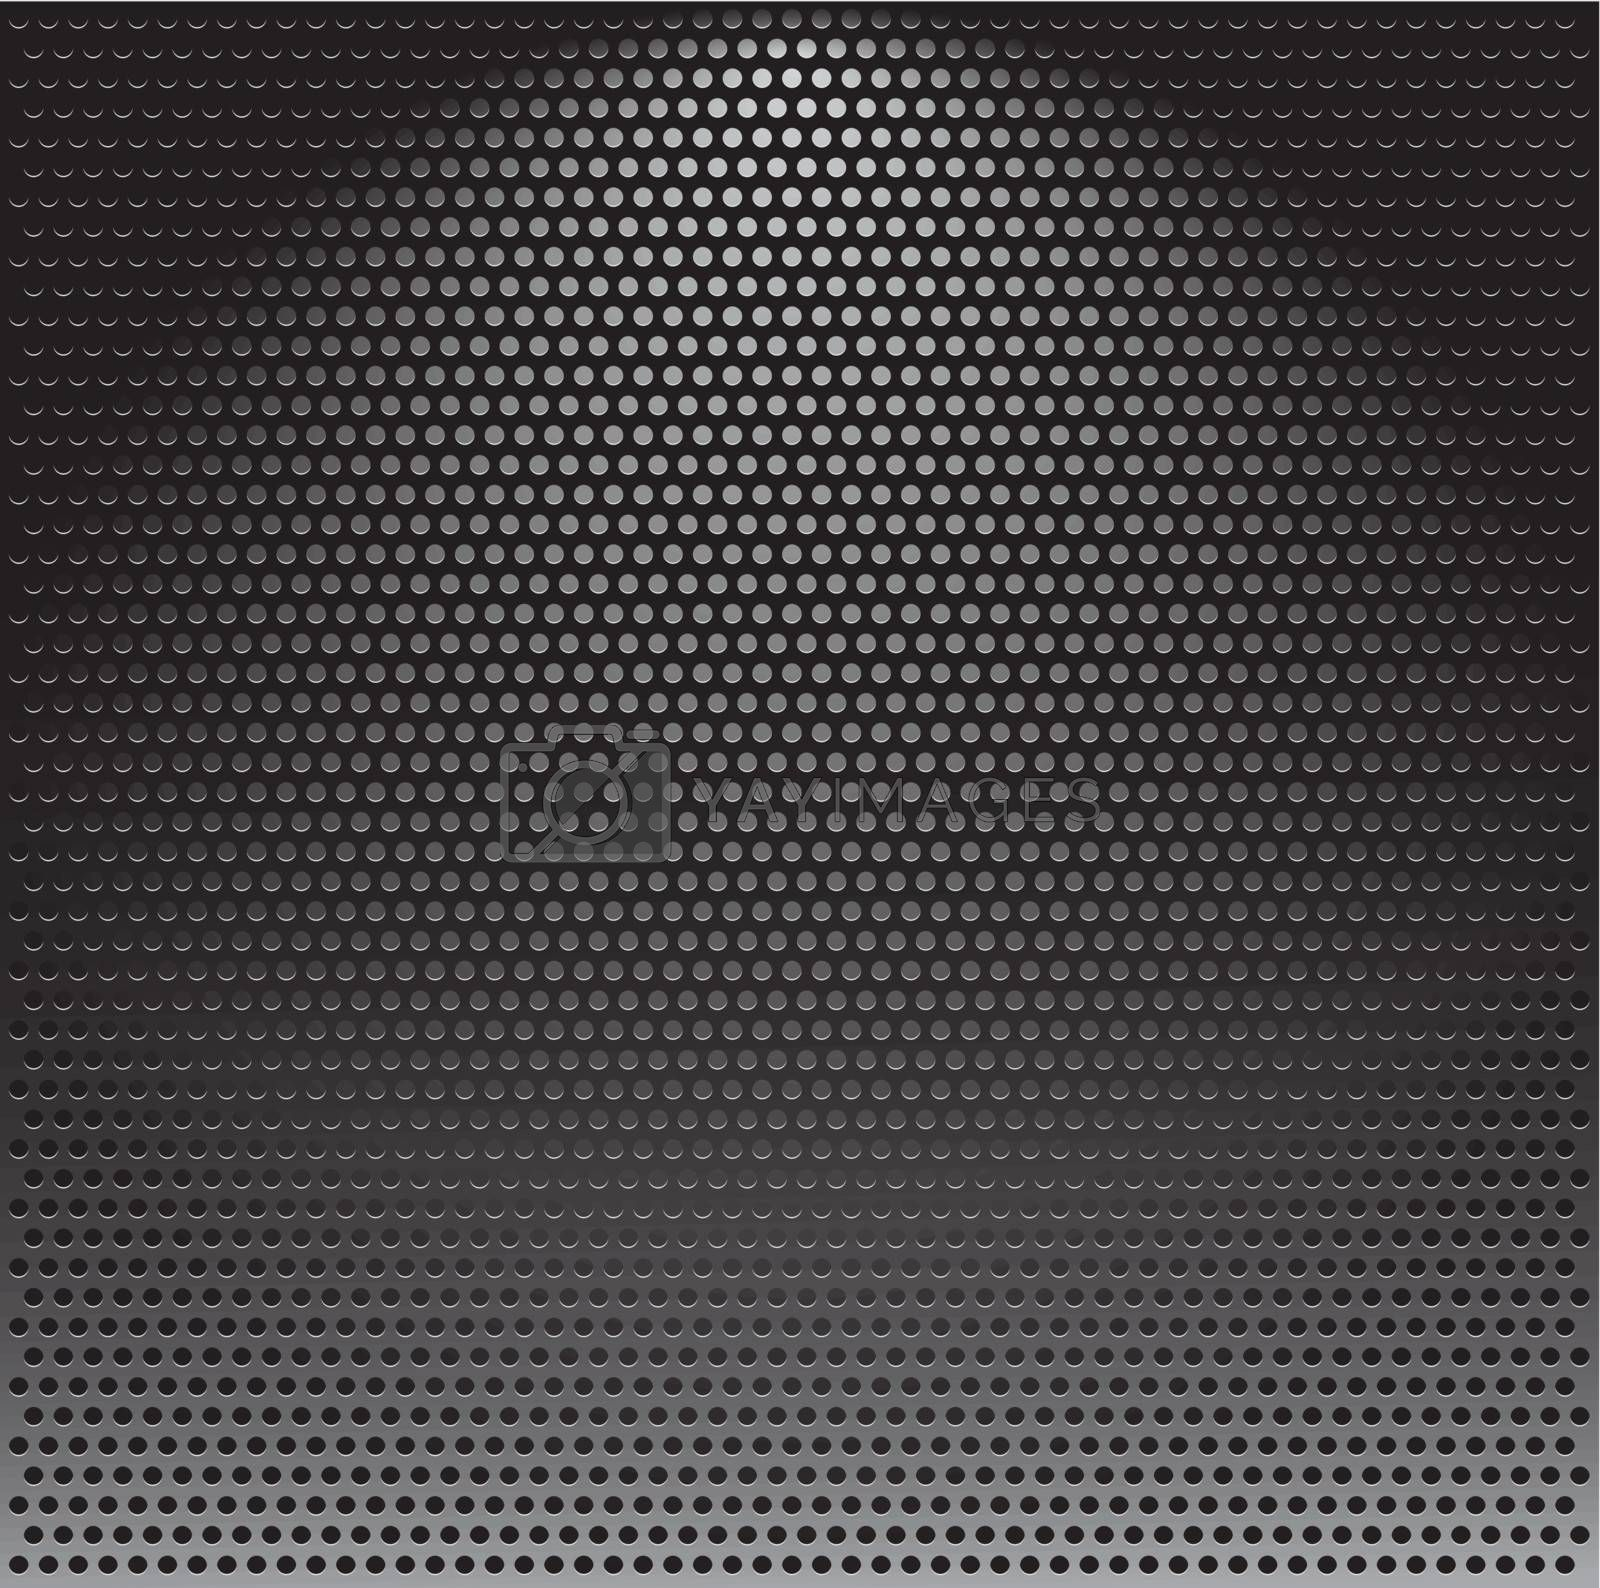 Realistic vector speaker grill background